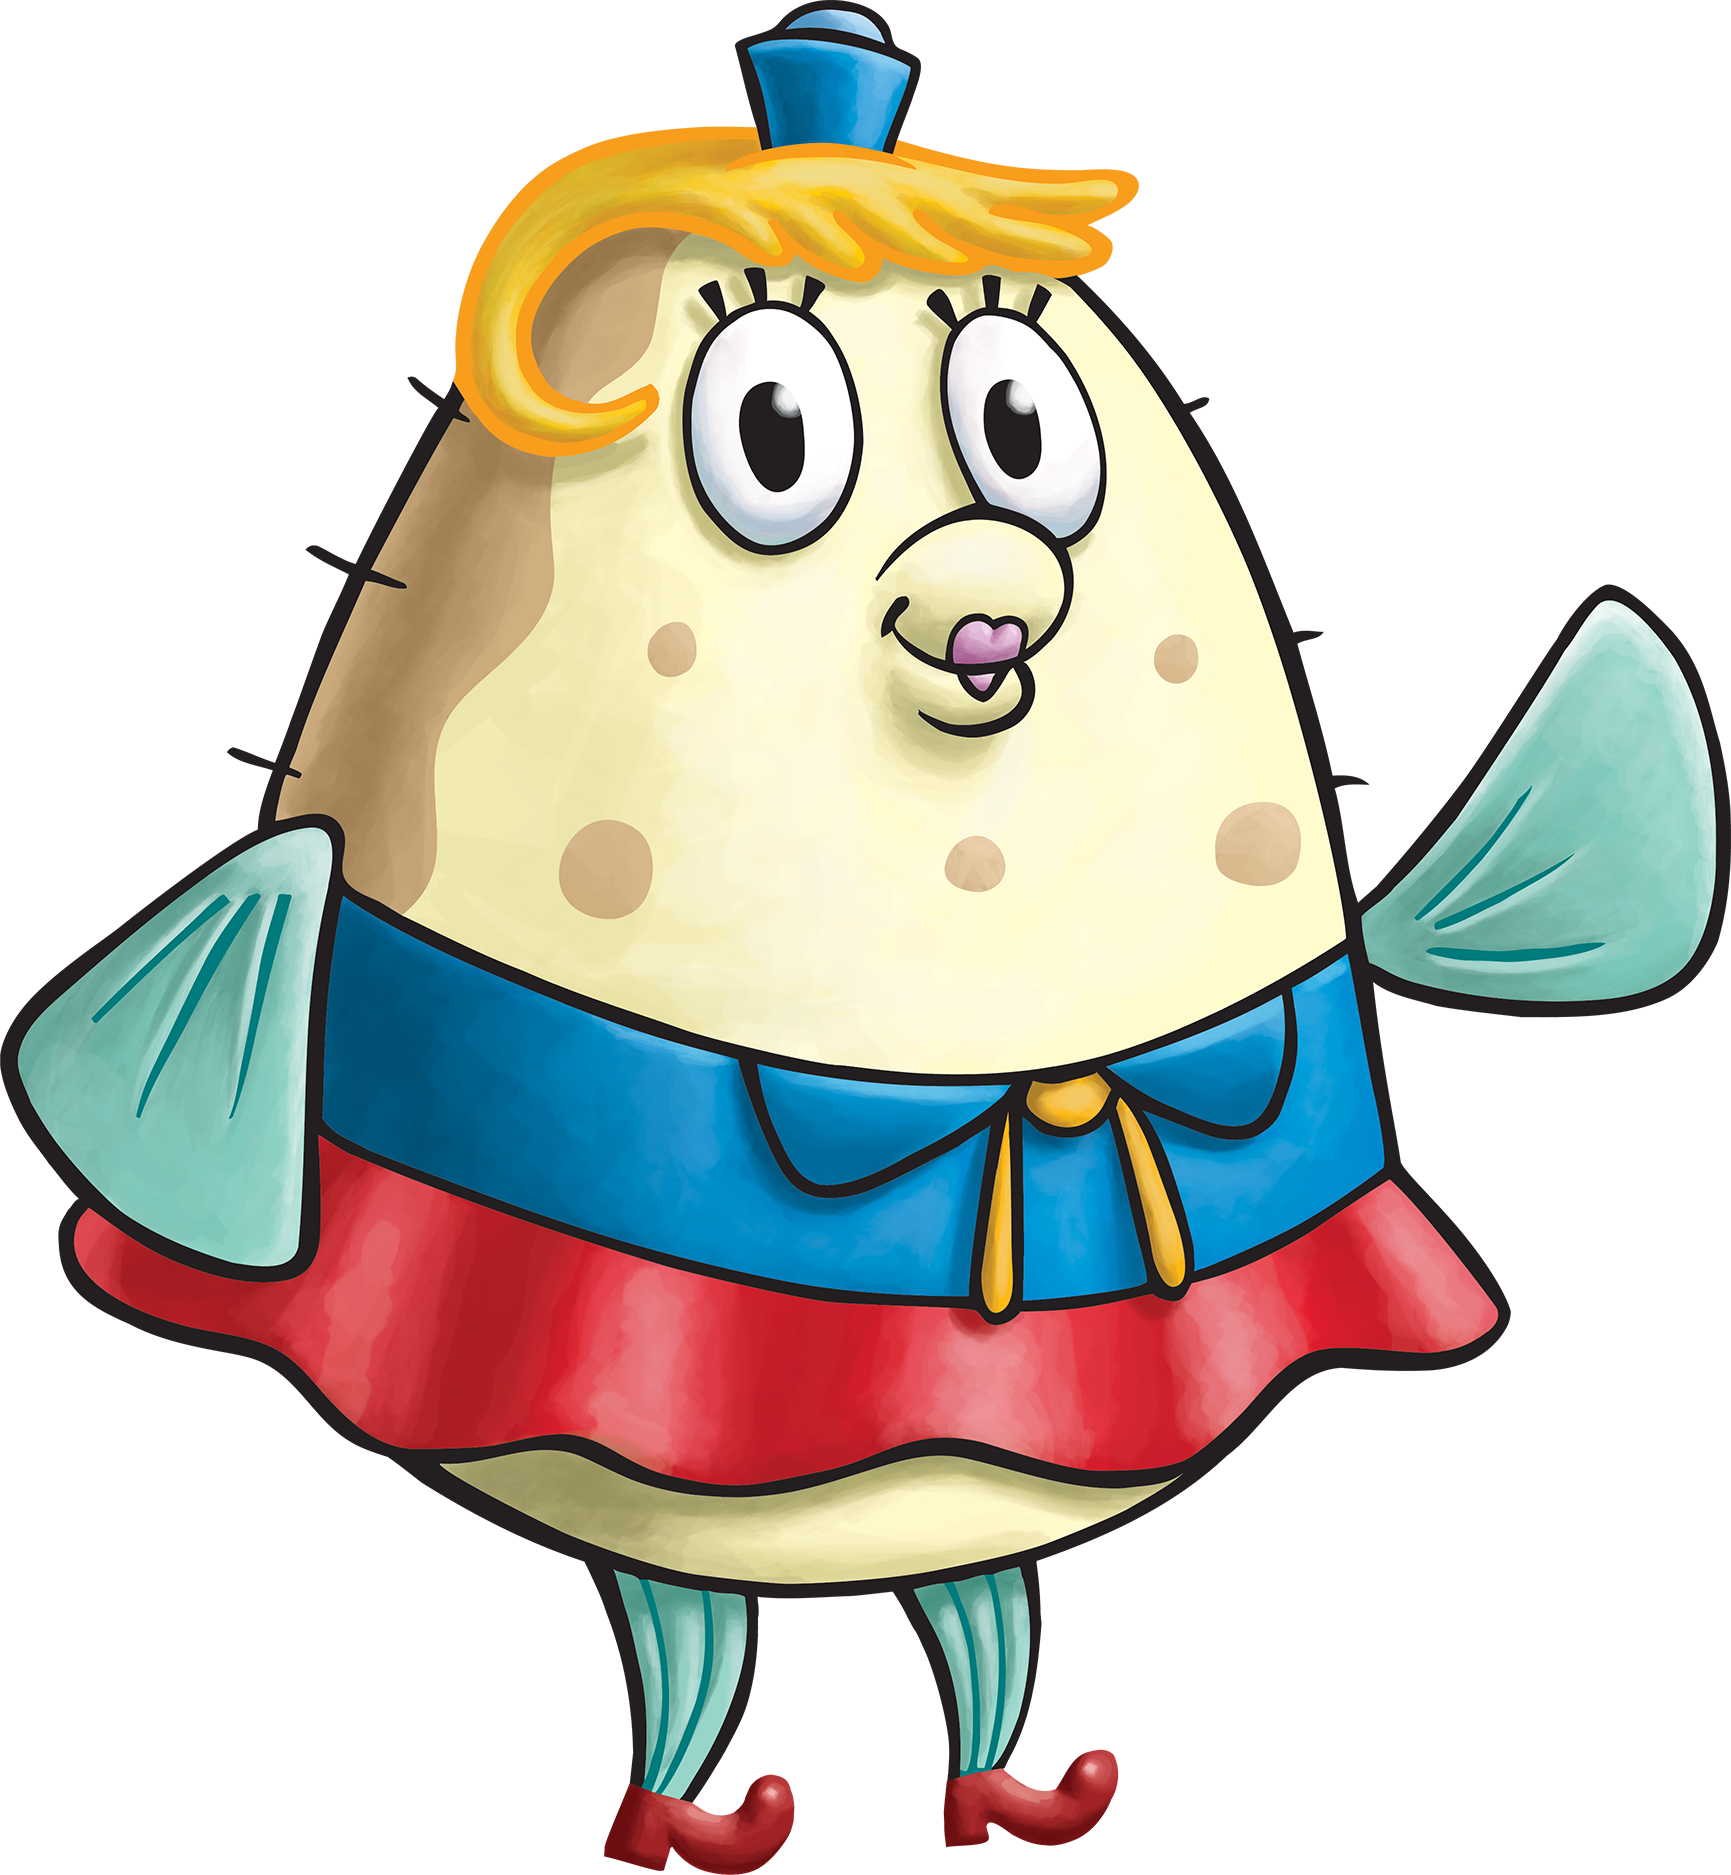 Mrs Puff gallery Encyclopedia SpongeBobia